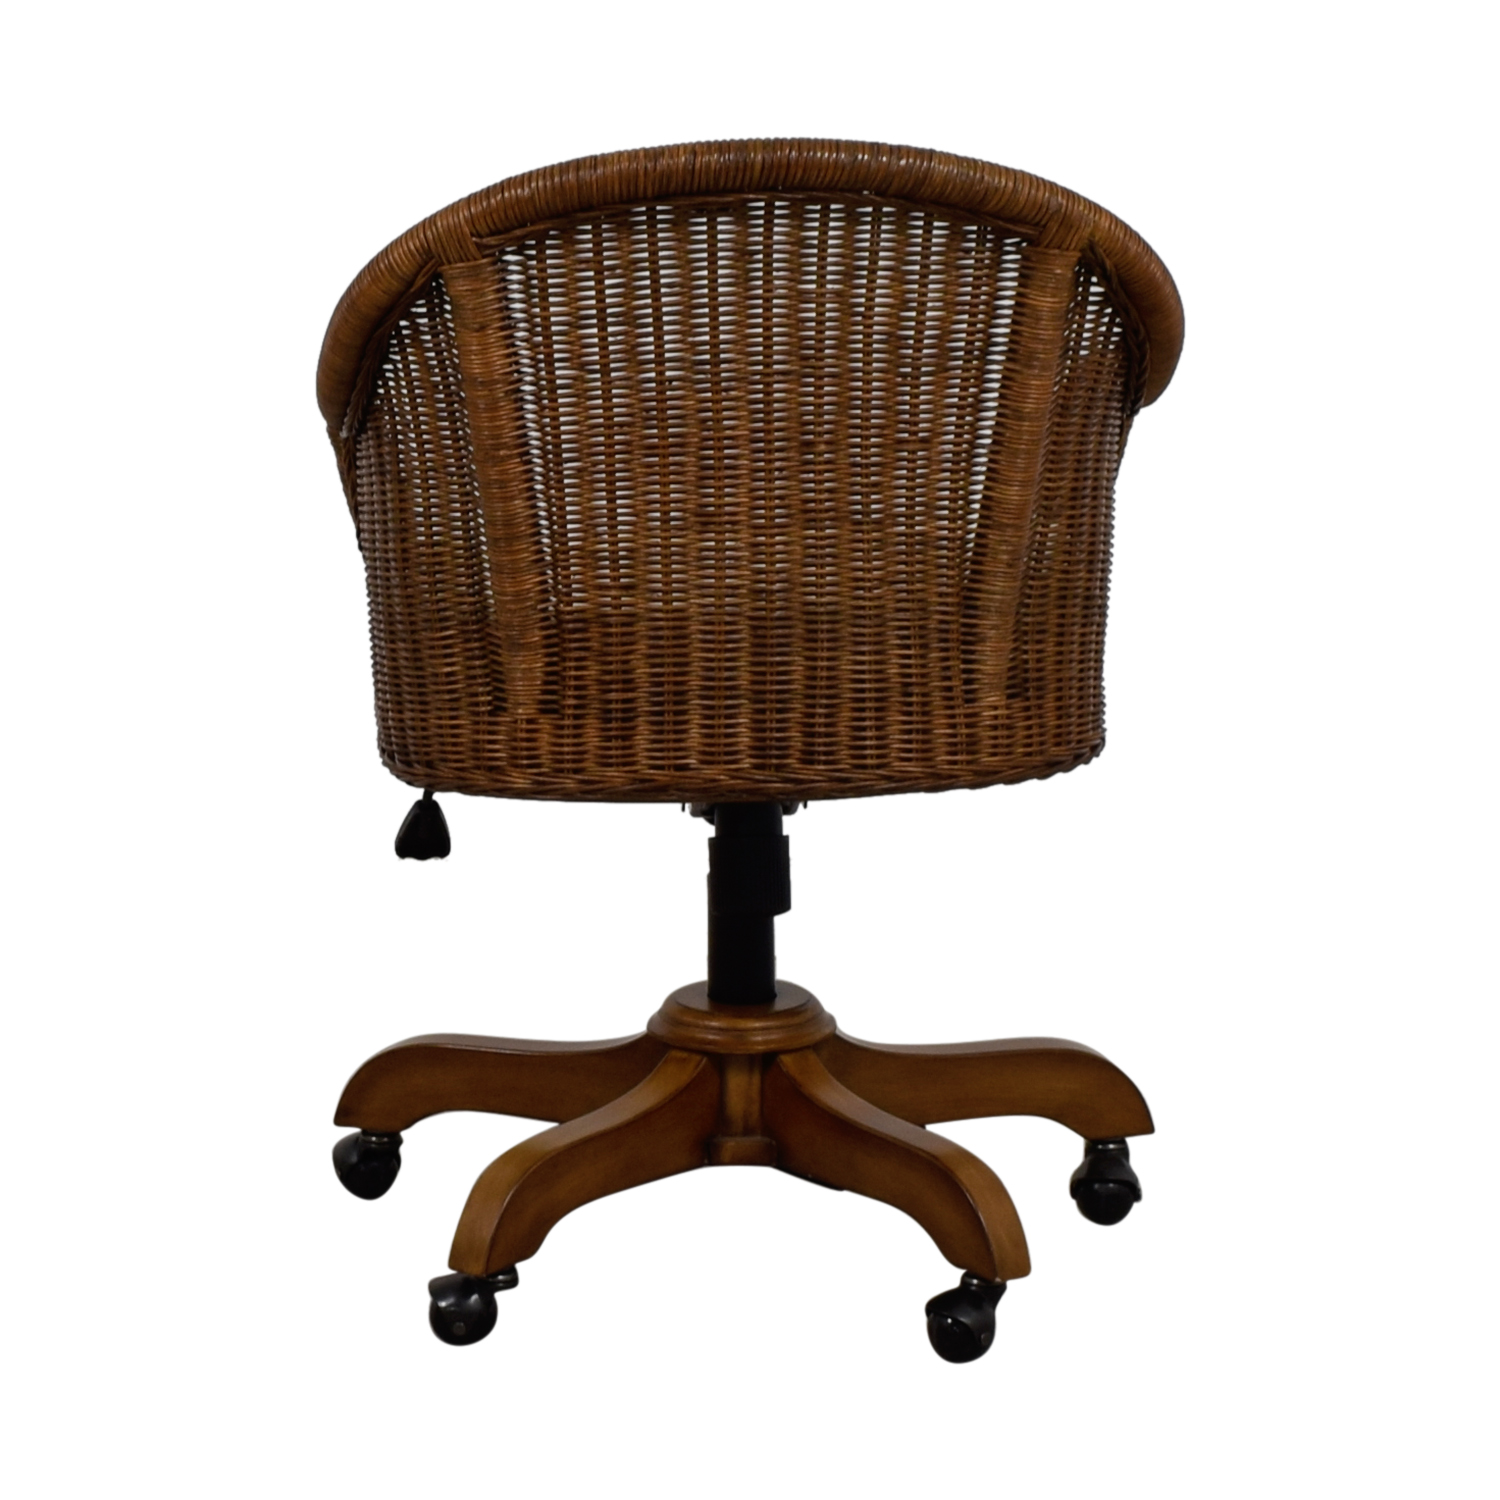 Pottery Barn Wicker Chair Furnishare Sell Your Used Furniture